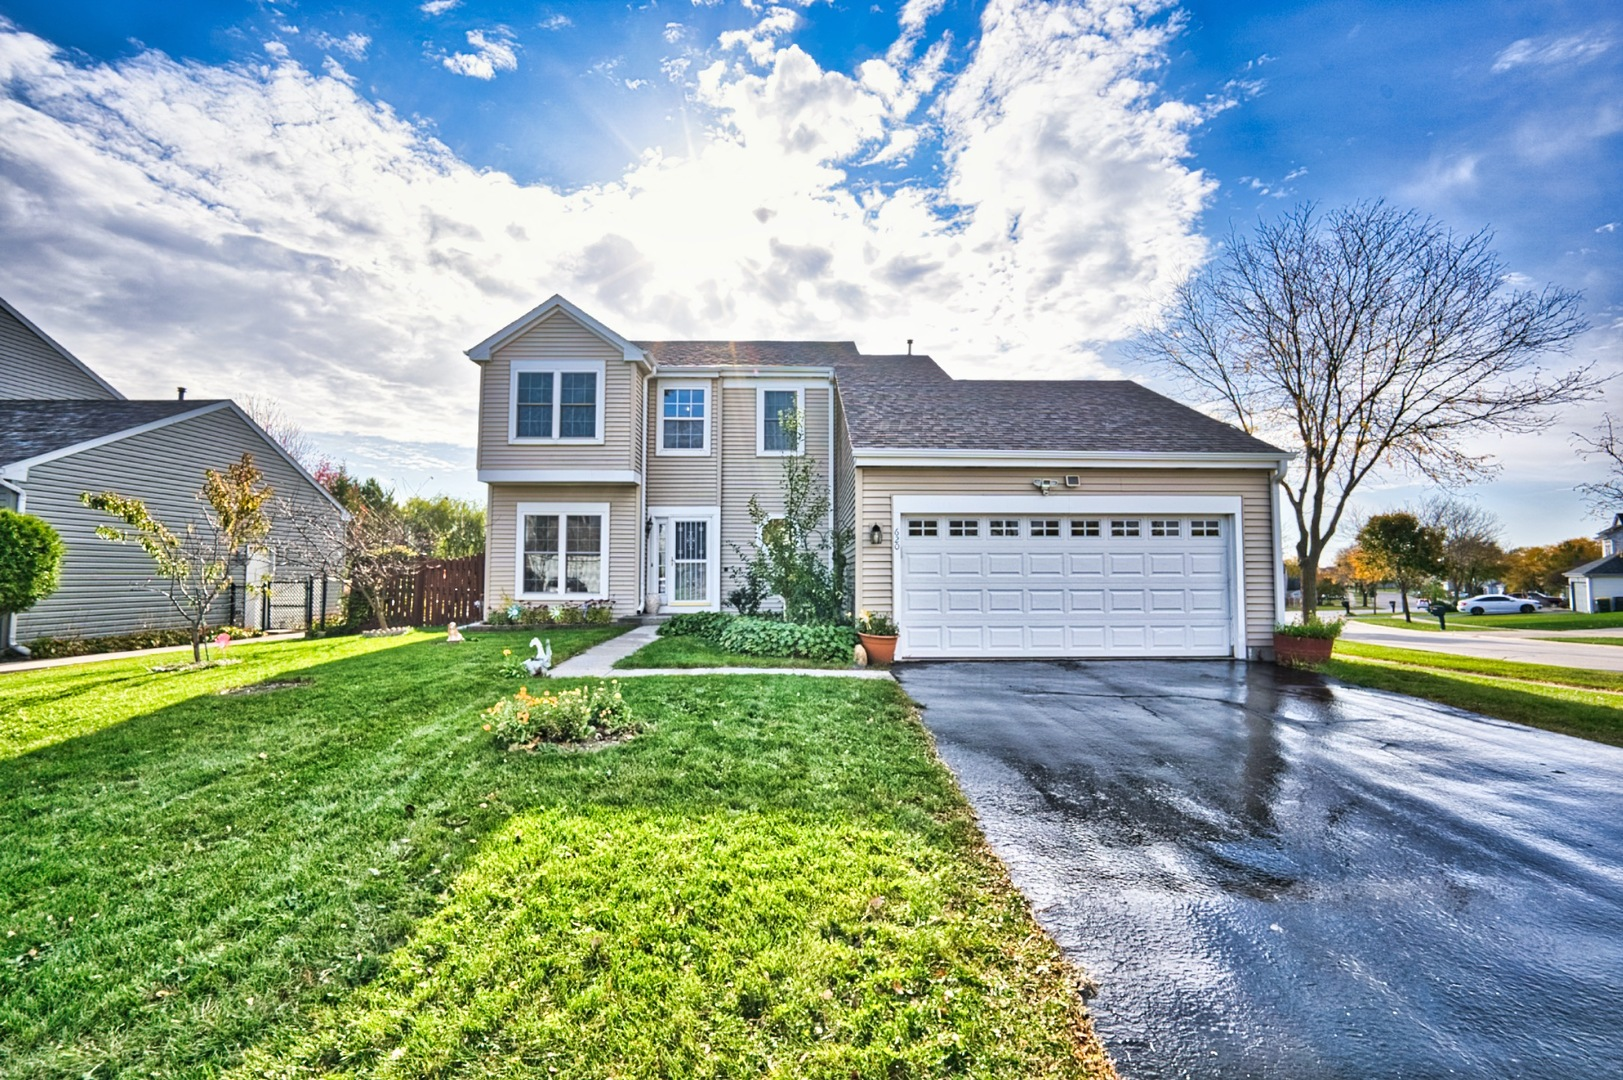 Photo for 620 Joseph Street, Lake In The Hills, IL 60156 (MLS # 10908283)